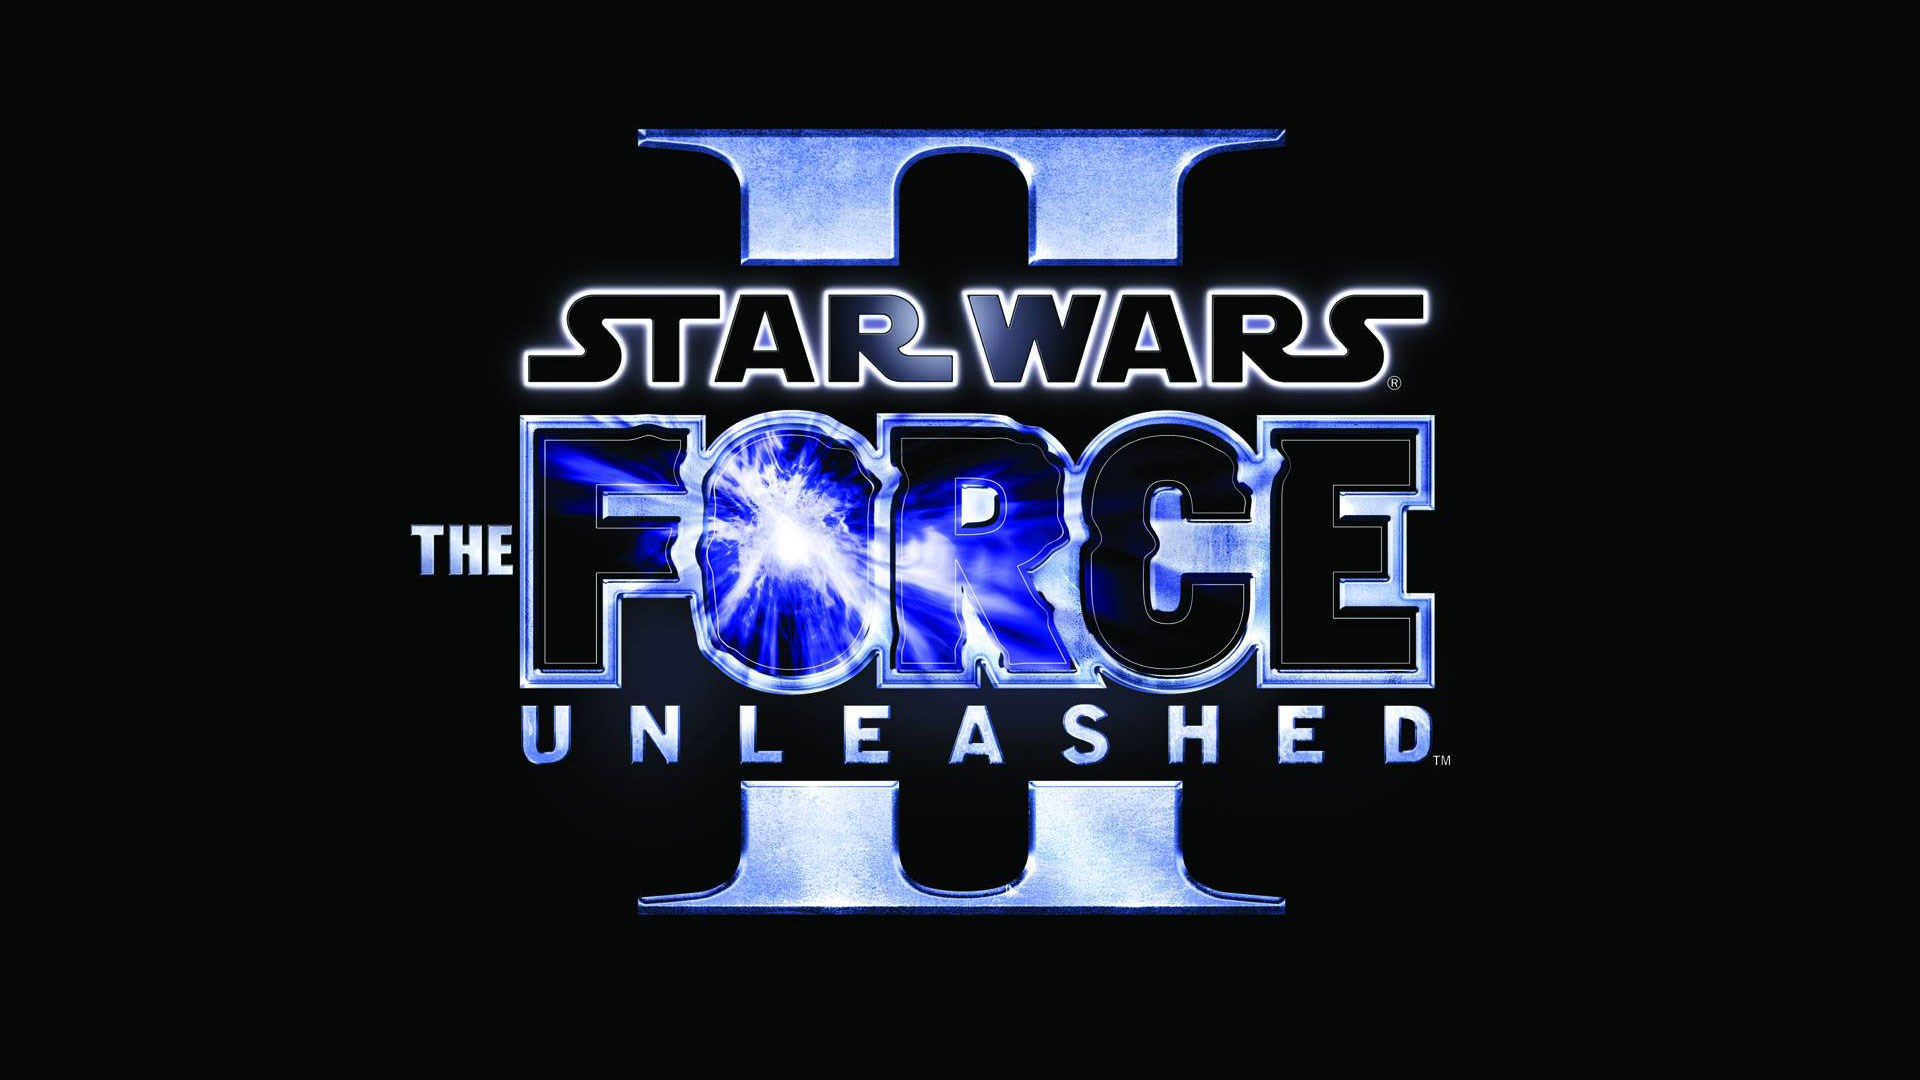 1920x1080-windows-star-wars-the-force-unleashed-ii-wallpaper-wpc5801126